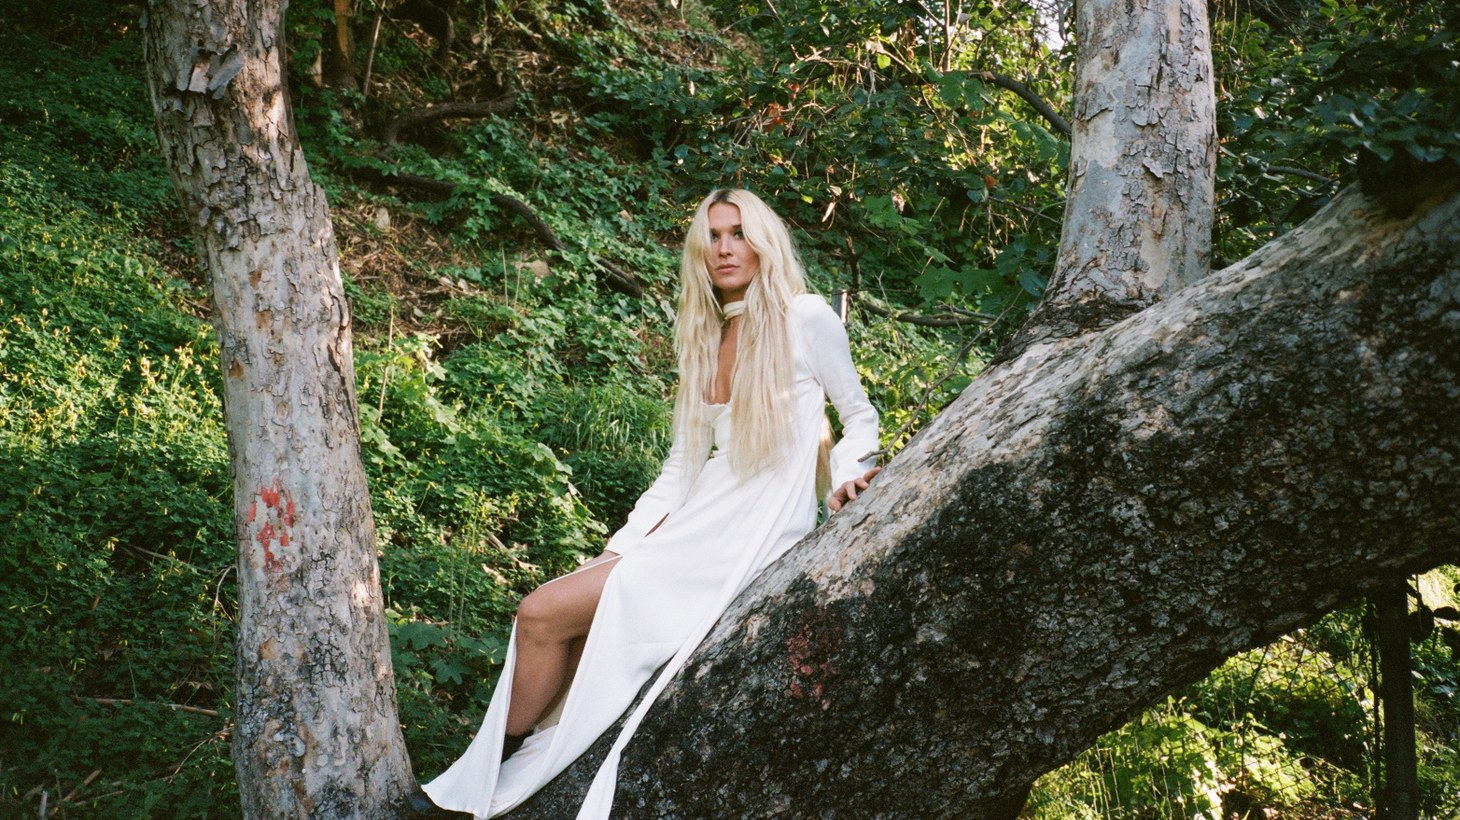 Natalie Bergman finds light in tragedy on her self-titled solo debut.